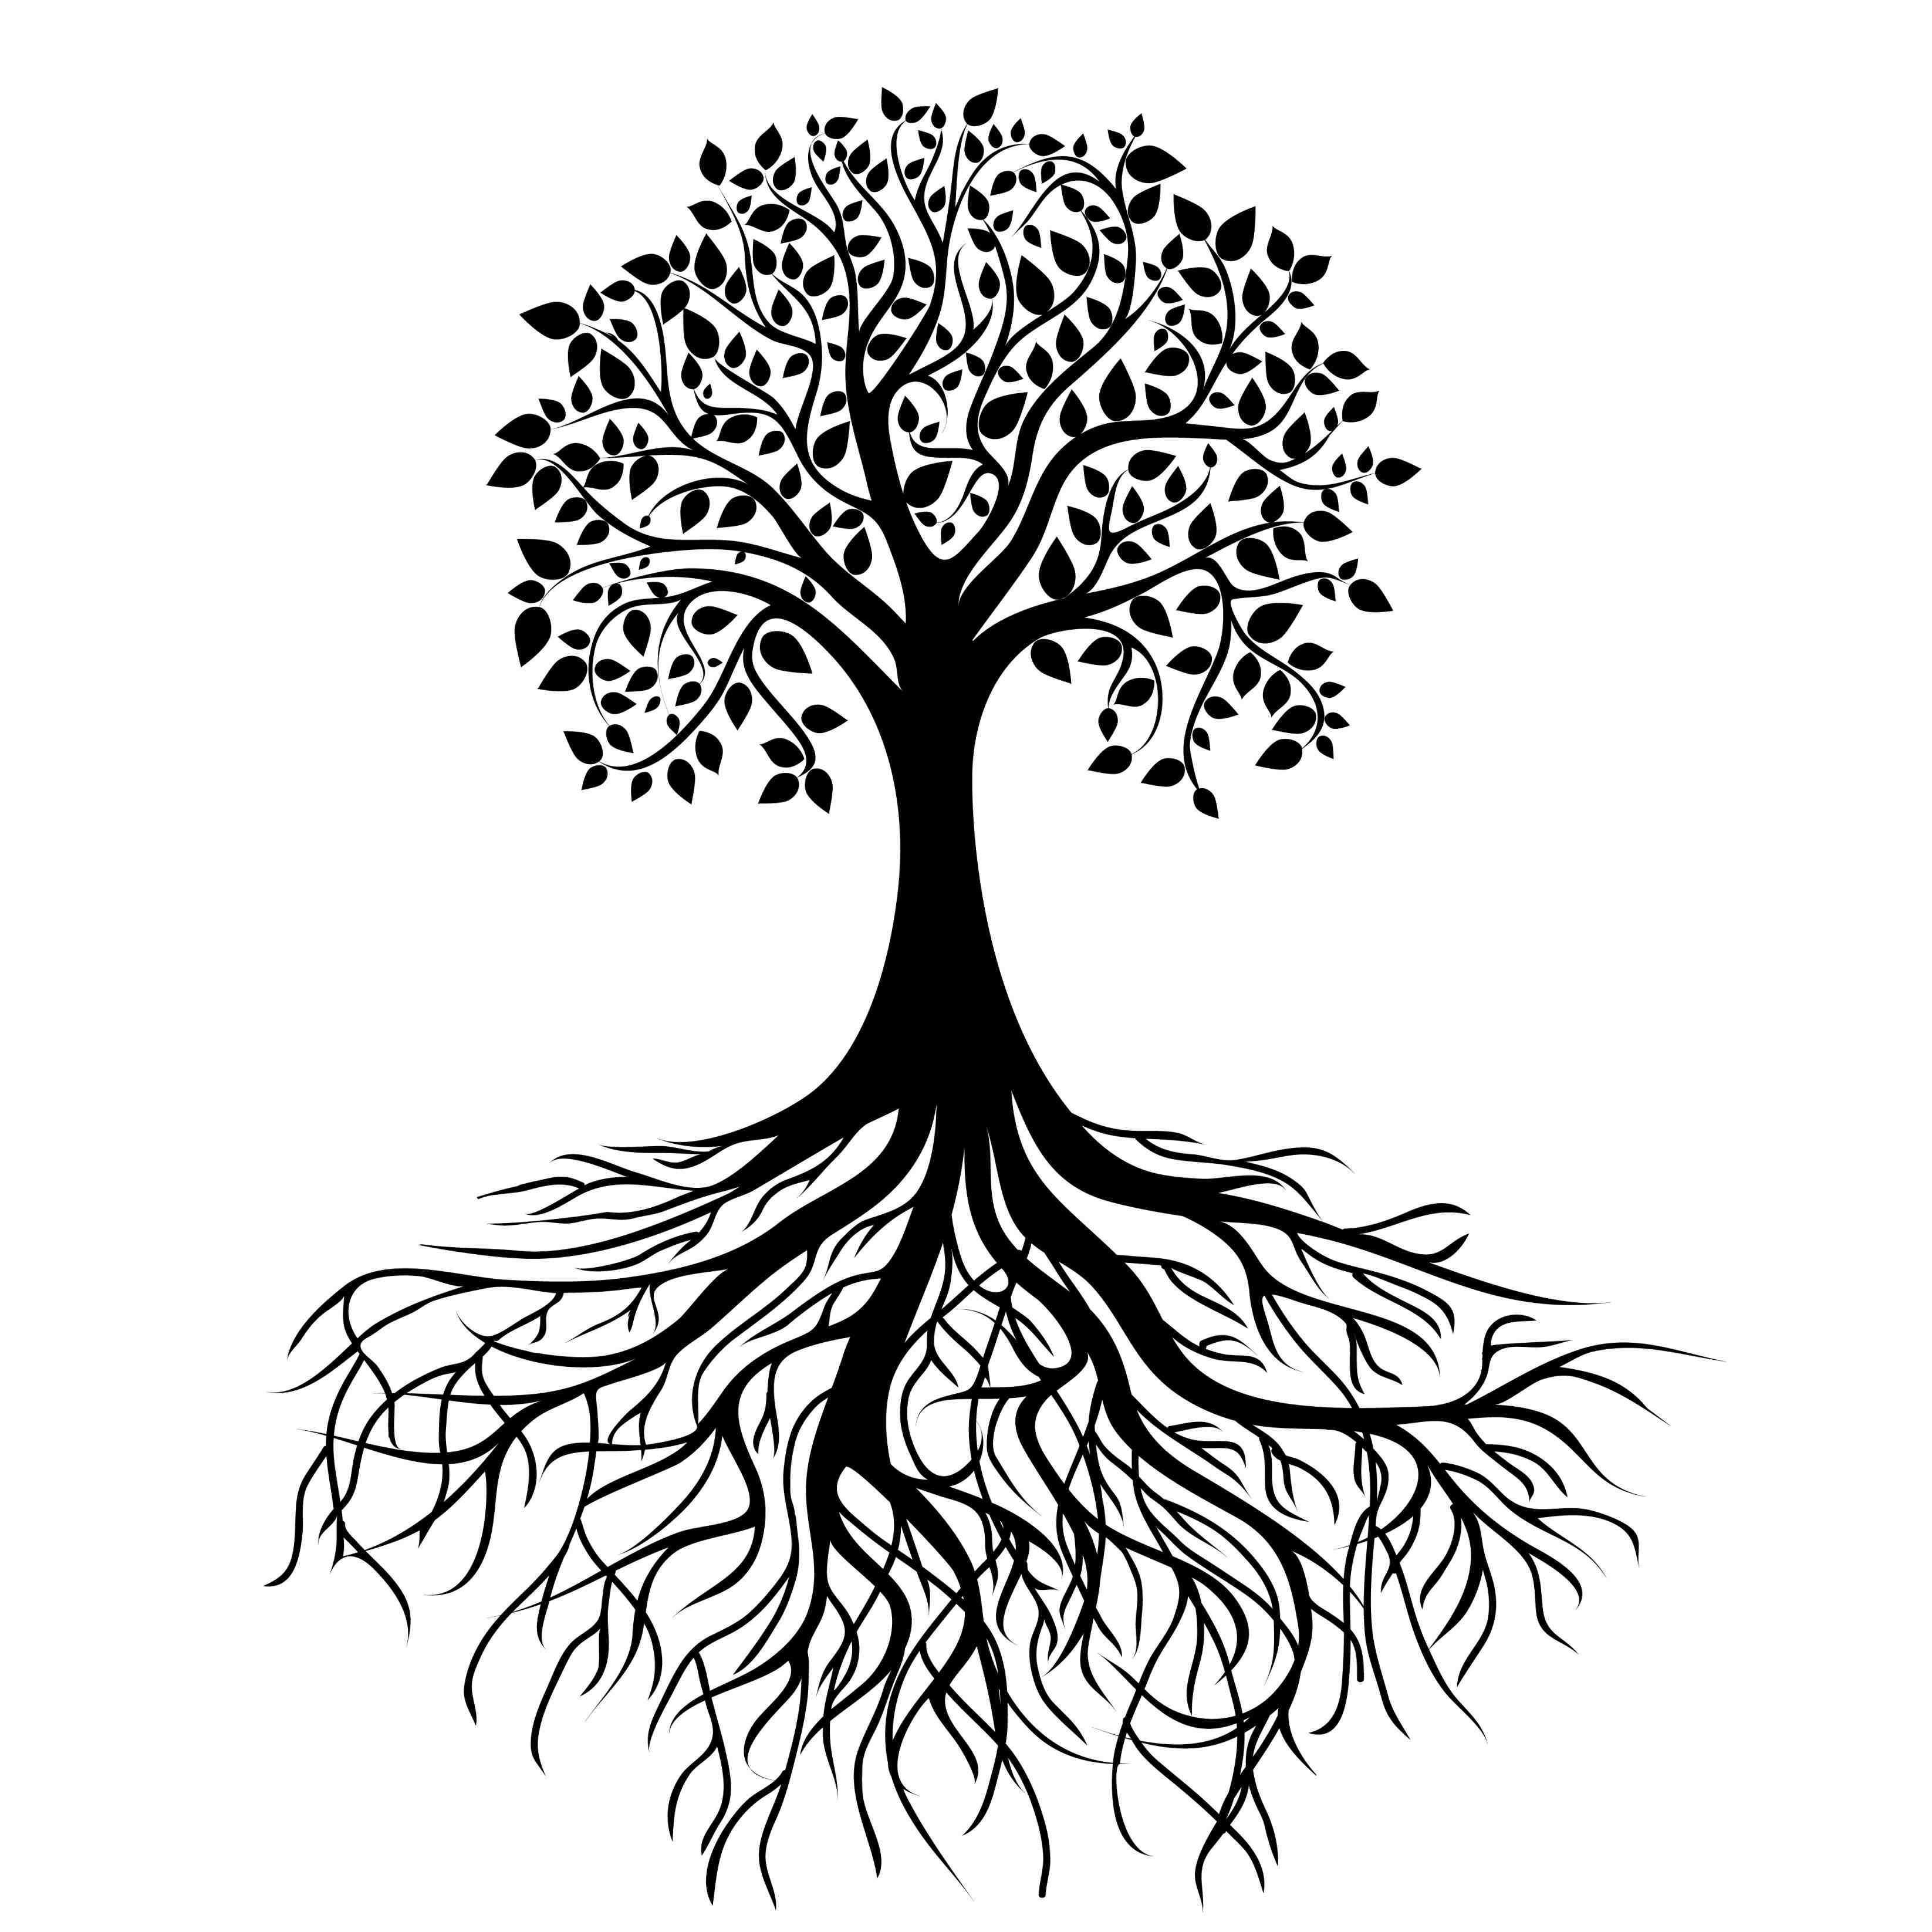 treeline silhouette clip art at getdrawings com free for personal rh getdrawings com tree with roots clipart png free tree with roots clipart download